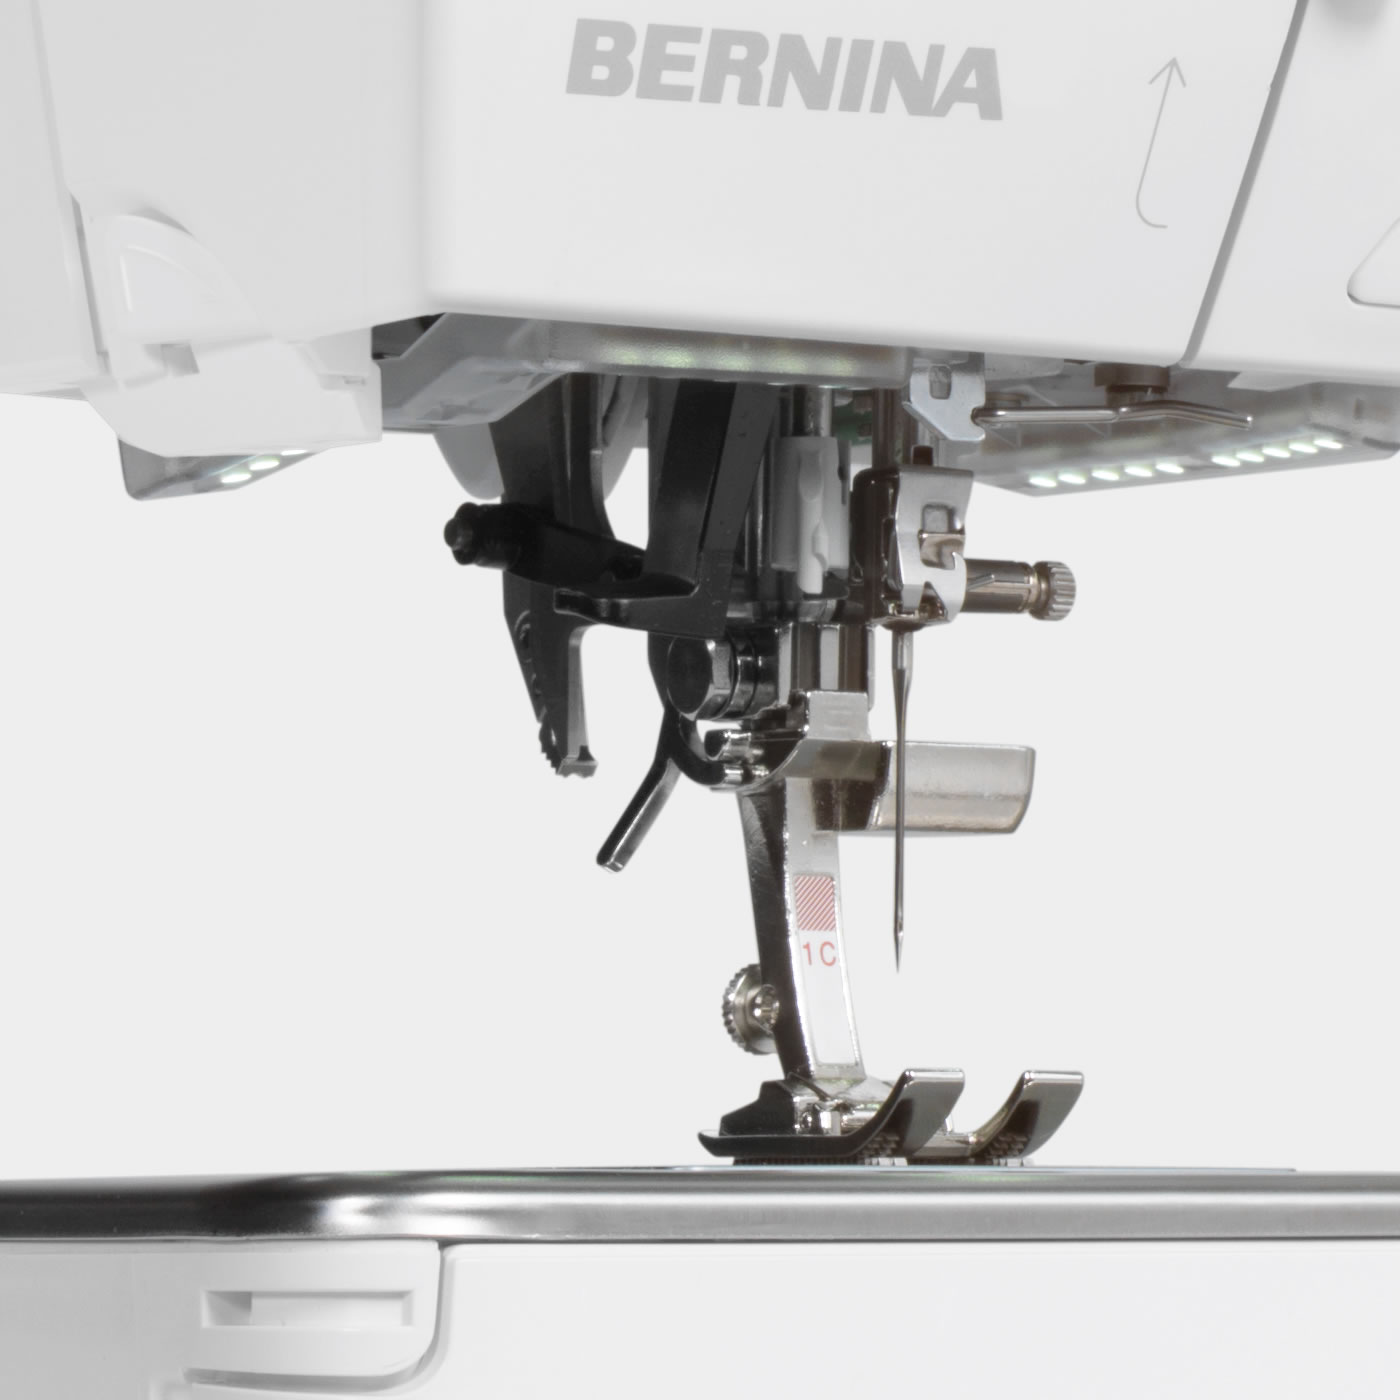 Bernina 710 with the bernina 9 hook unlimited creativity bernina greater sewing pleasure fandeluxe Image collections